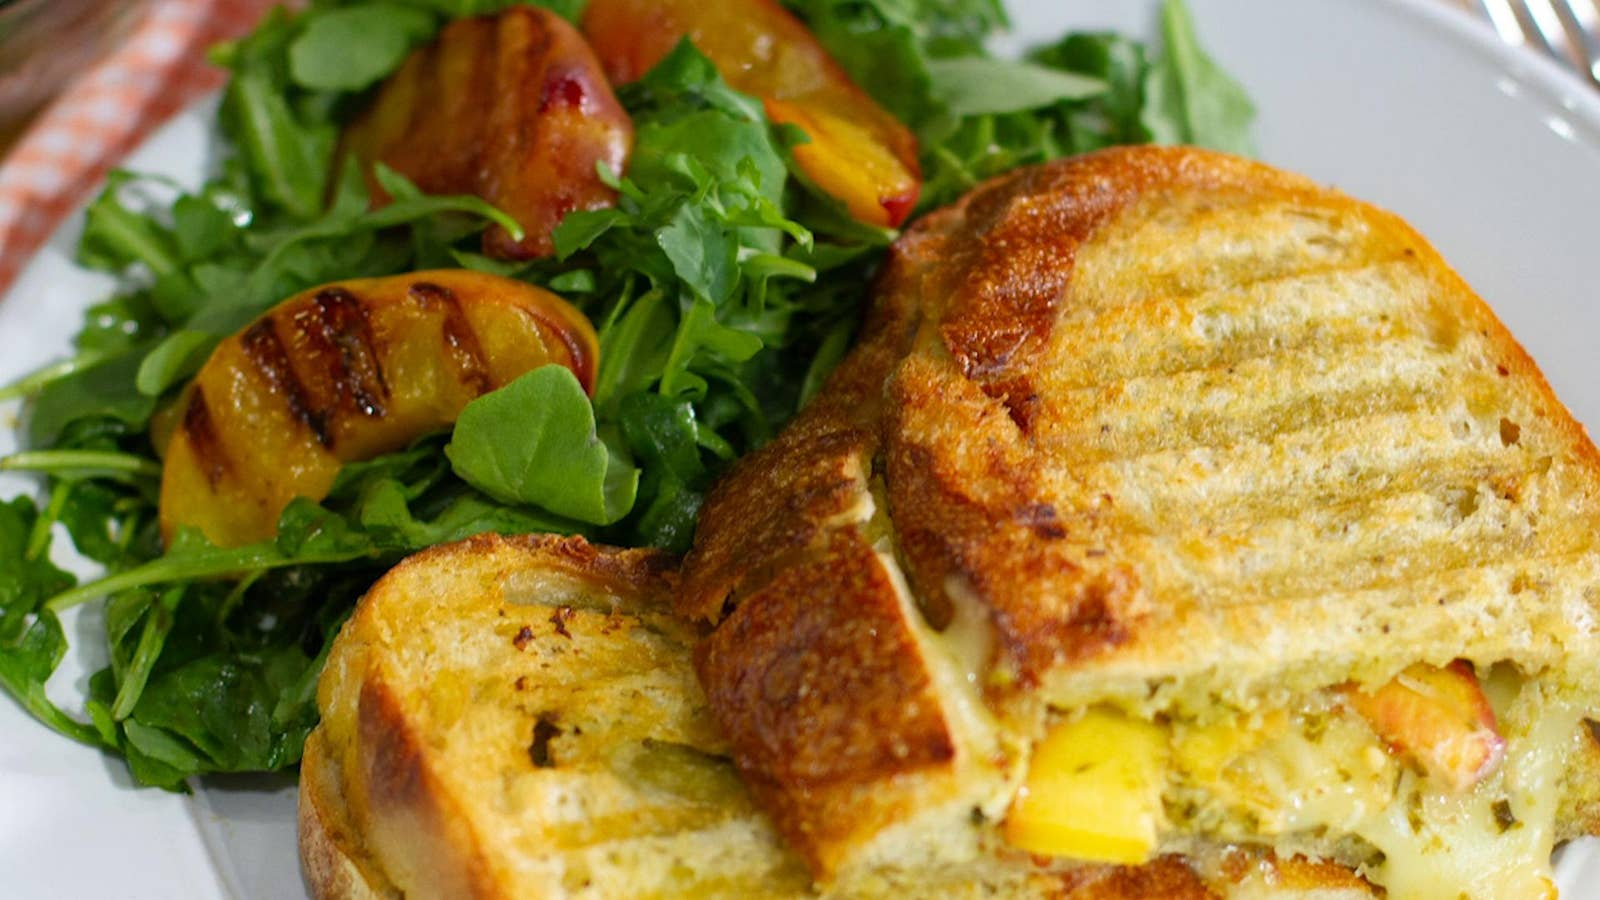 Grilled Peach Panini